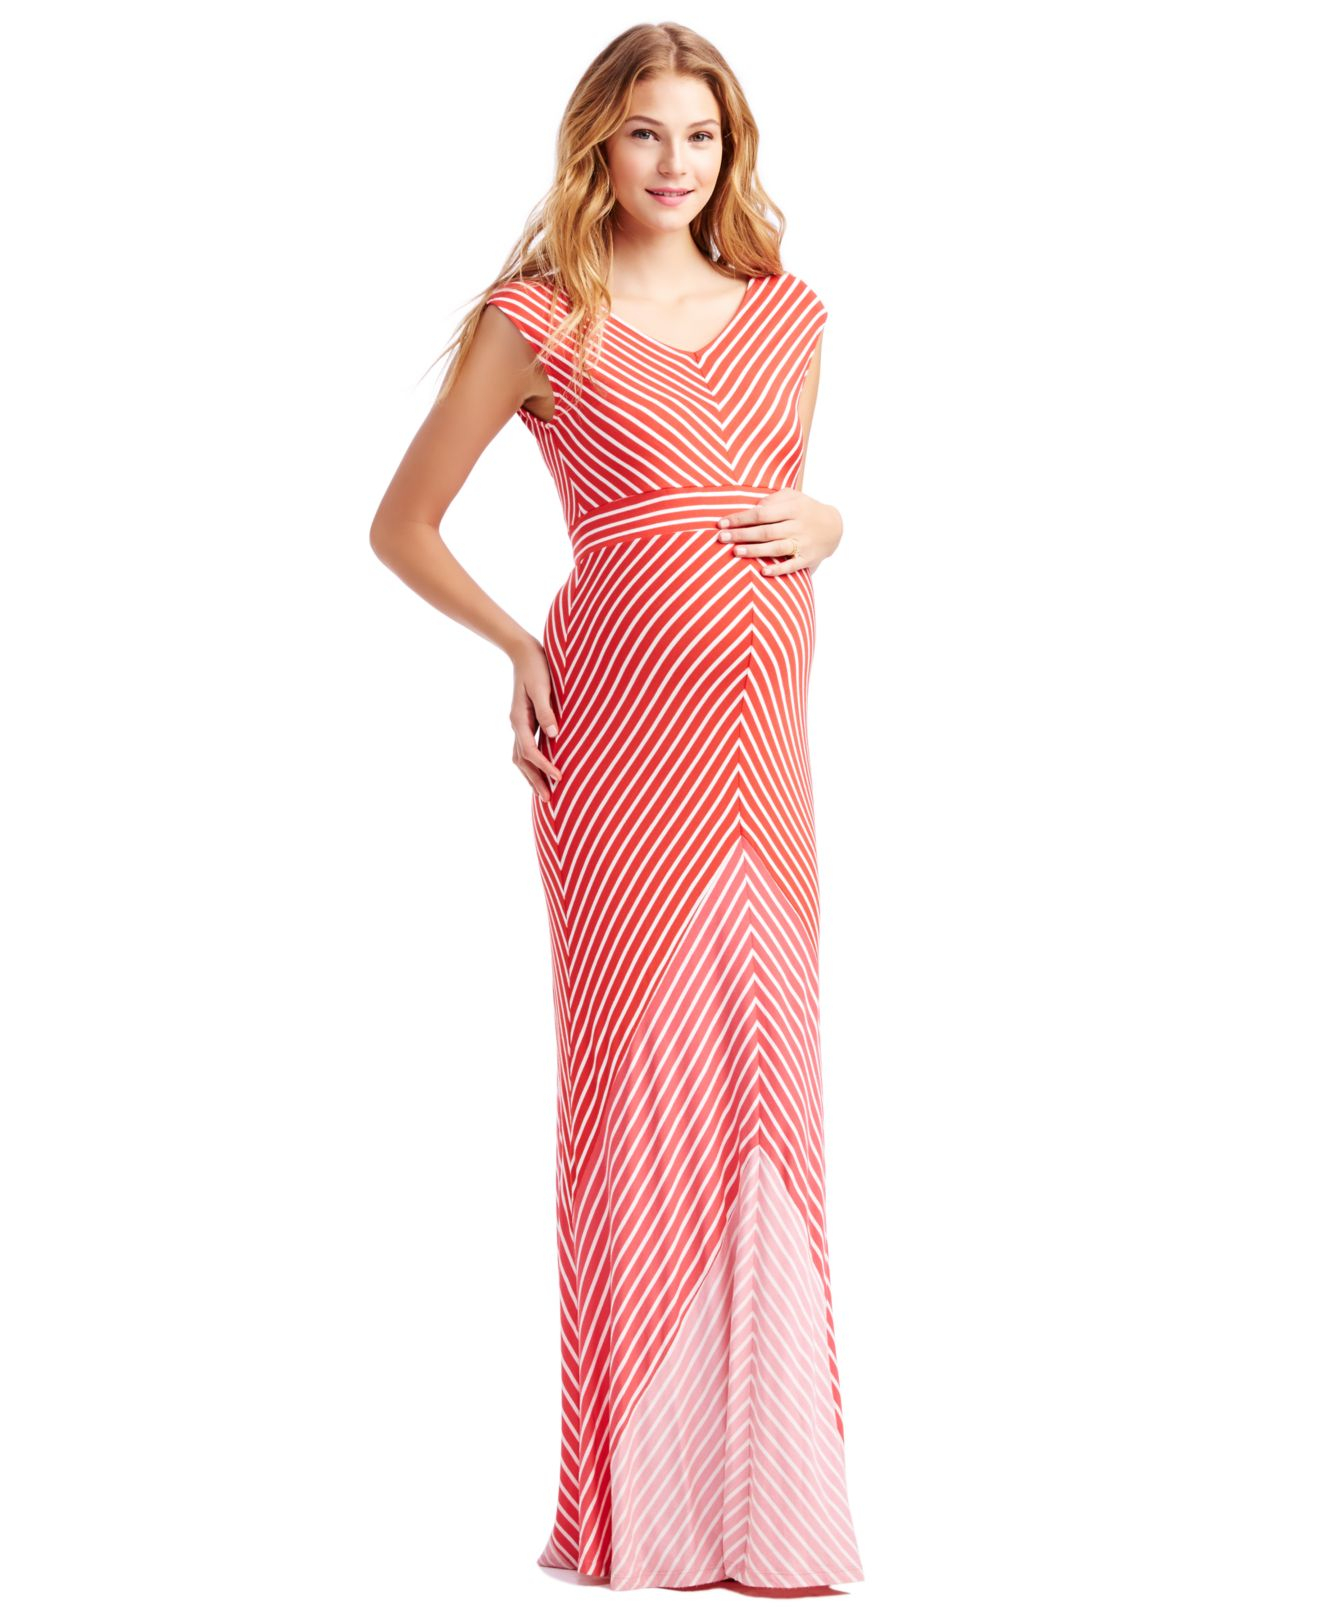 63b47ce3f7d Lyst - Jessica Simpson Maternity Cap-sleeve Striped Maxi Dress in Pink